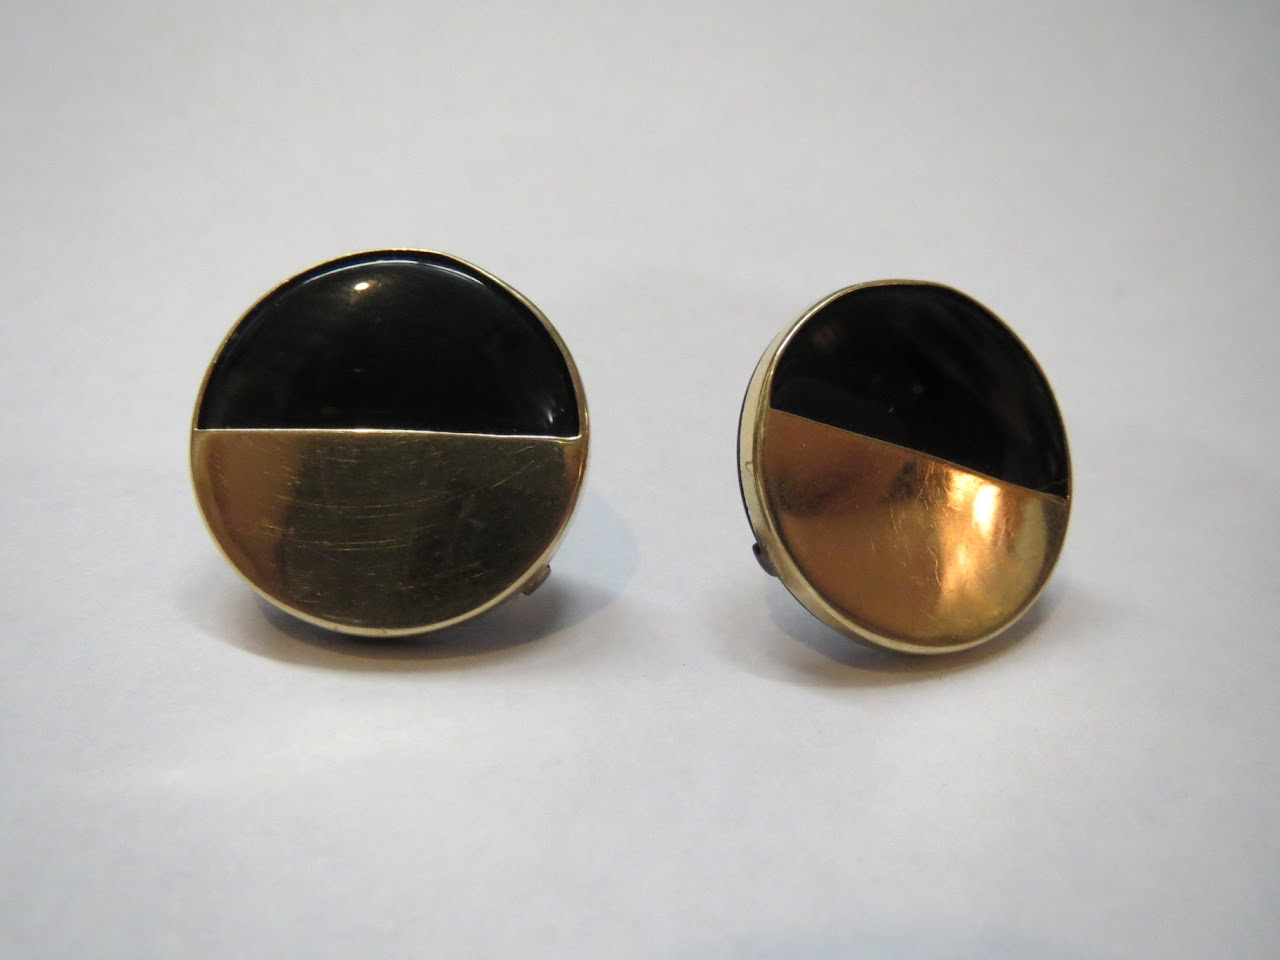 14kt and Black Onyx Earrings